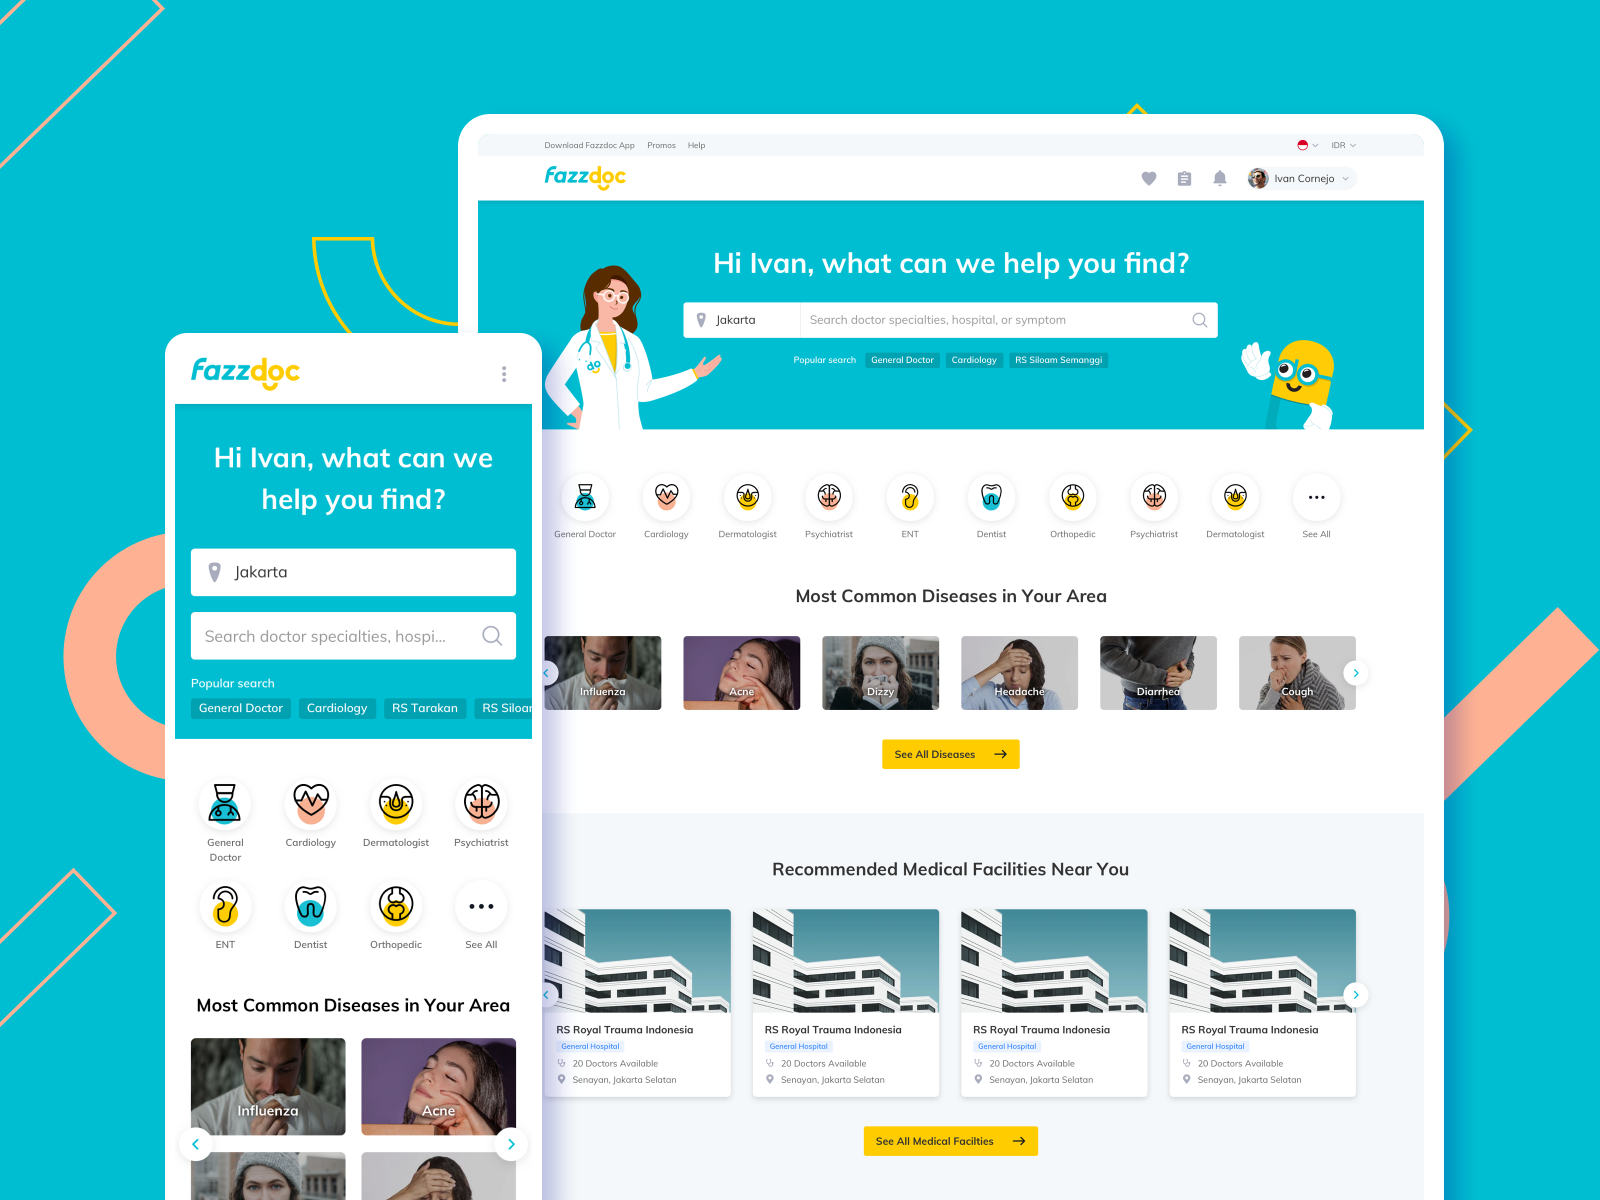 Fazzdoc Health Startup Offers Rapid On-Site Services